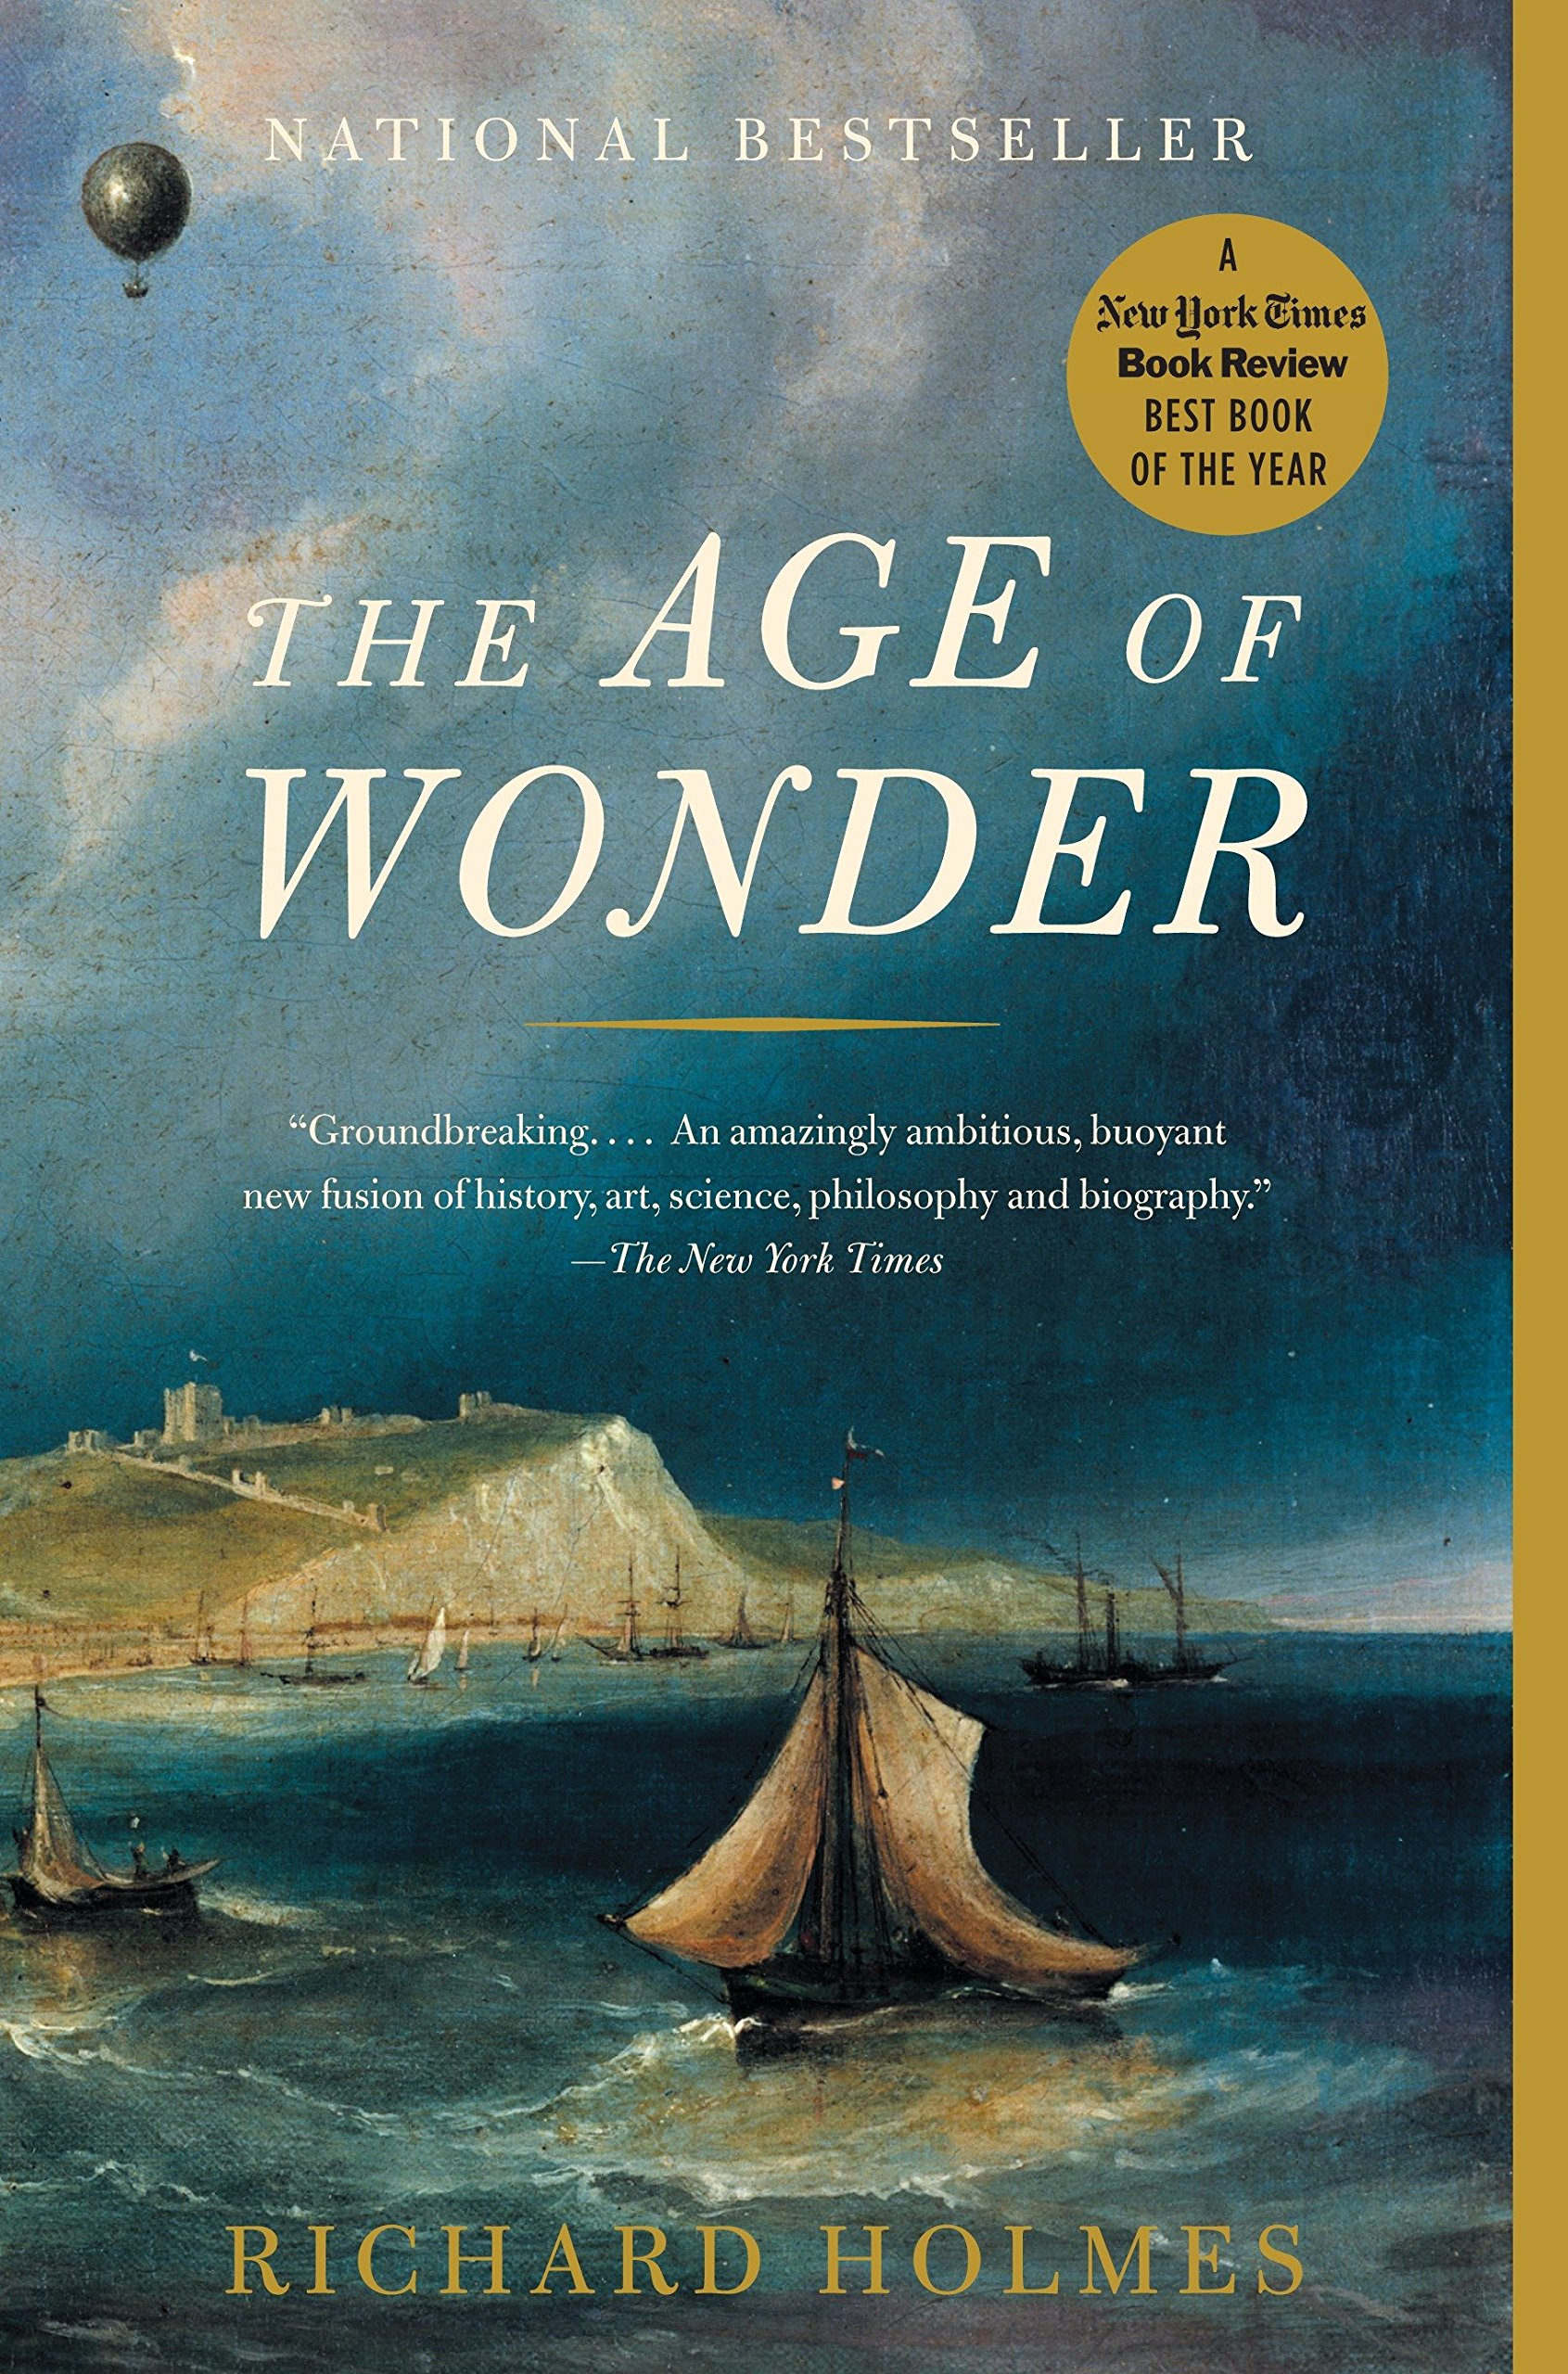 The Age of Wonder: The Romantic Generation and the Discovery of the Beauty and Terror of Science: Holmes, Richard: 9781400031870: Amazon.com: Books